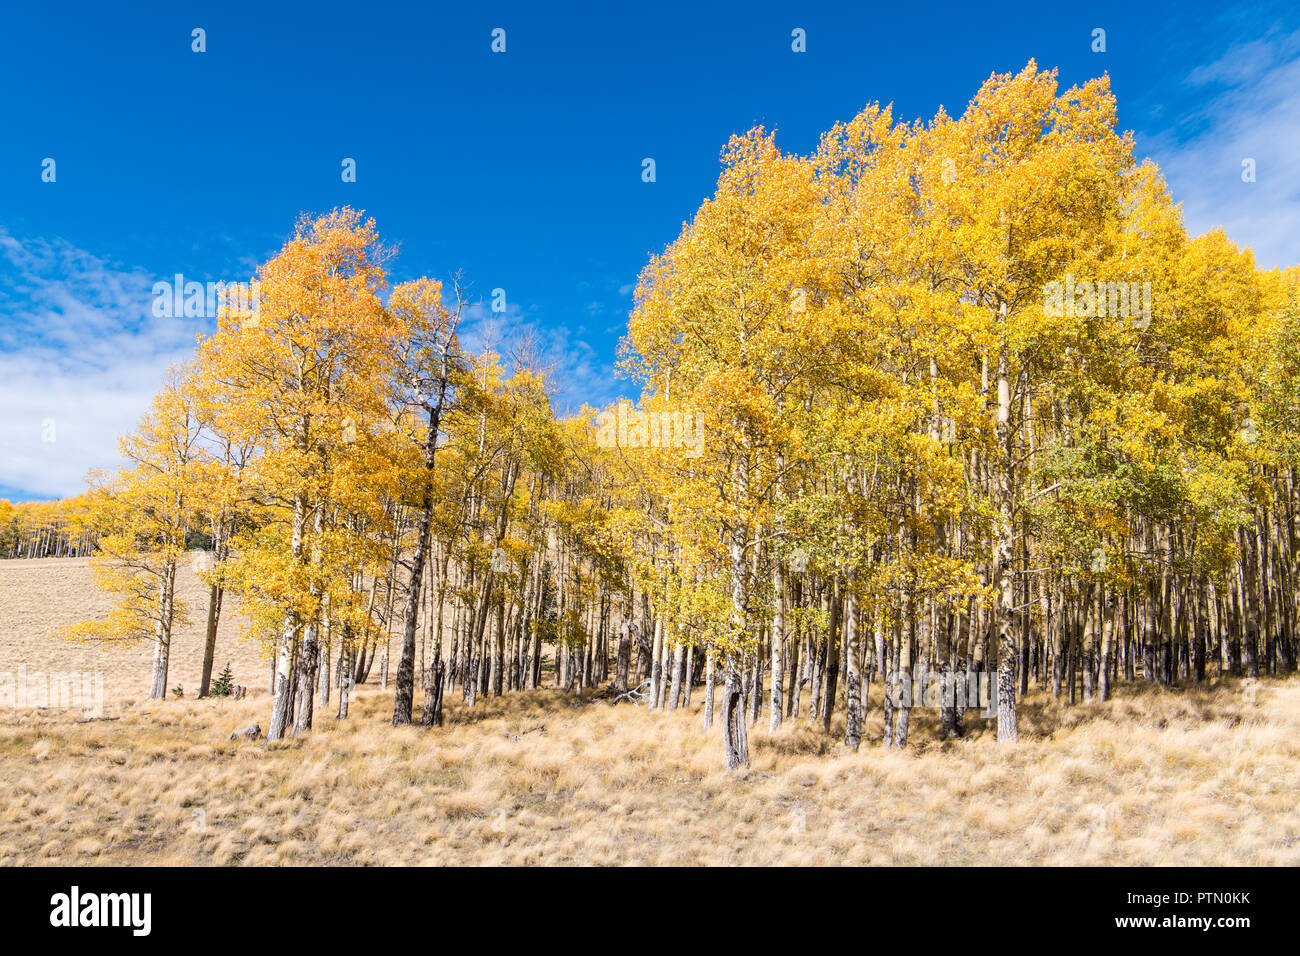 A grove of aspen trees in fall colors along the edge of a grassy meadow under a brilliant blue sky - Stock Image